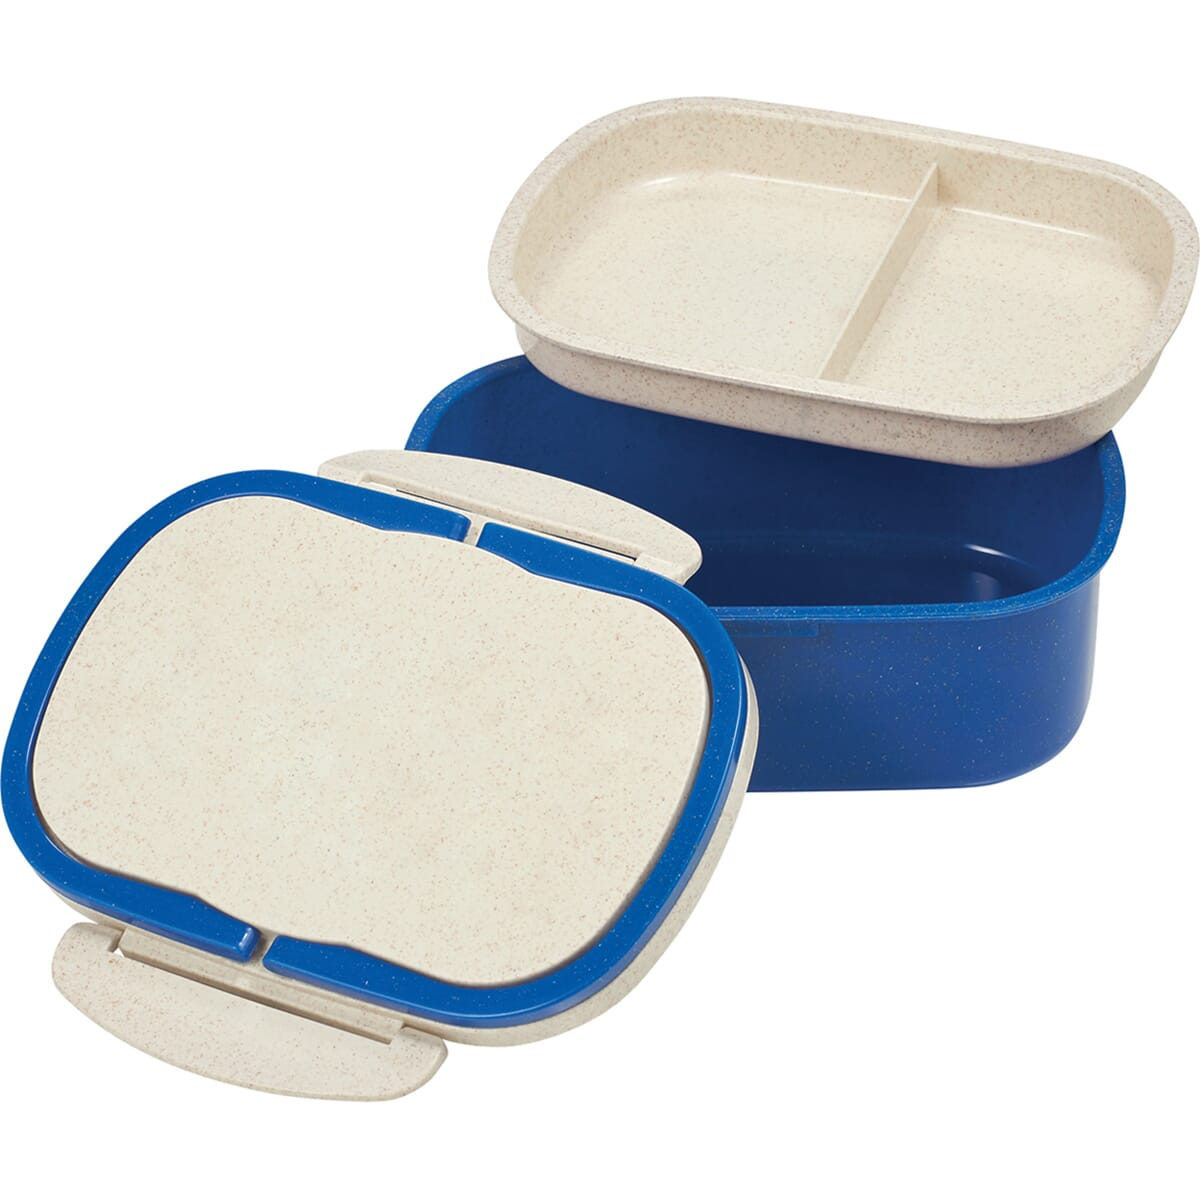 Eco friendly lunch box with logo